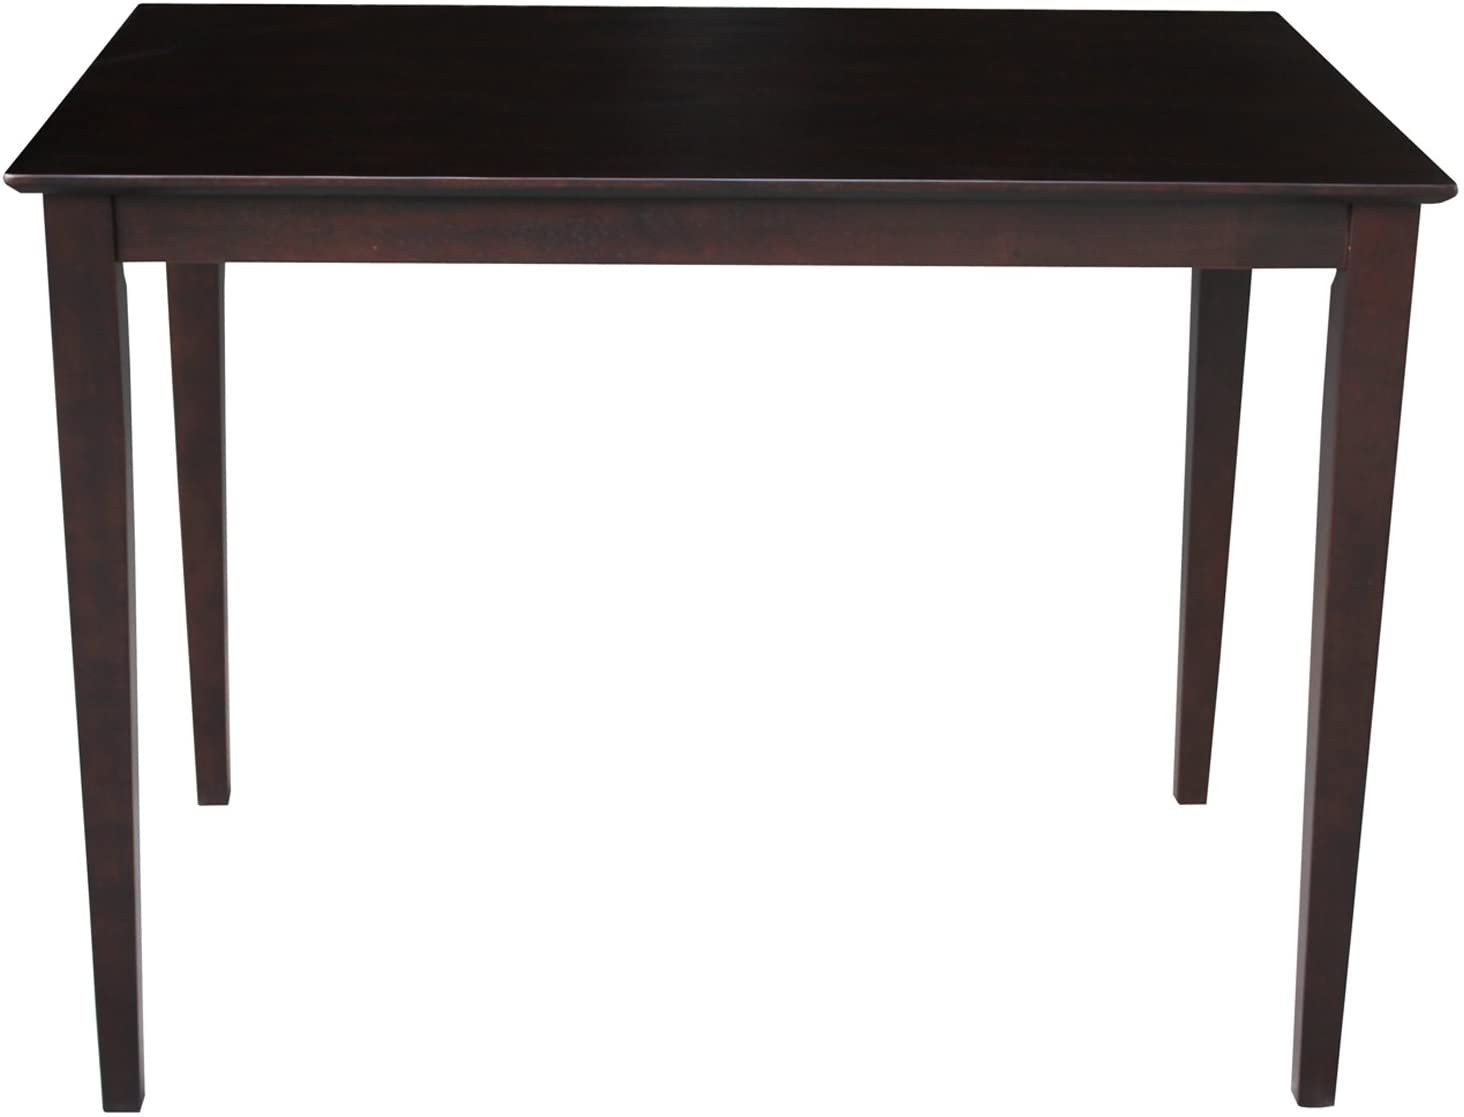 International Concepts Shaker Styled Counter Height Table, Java